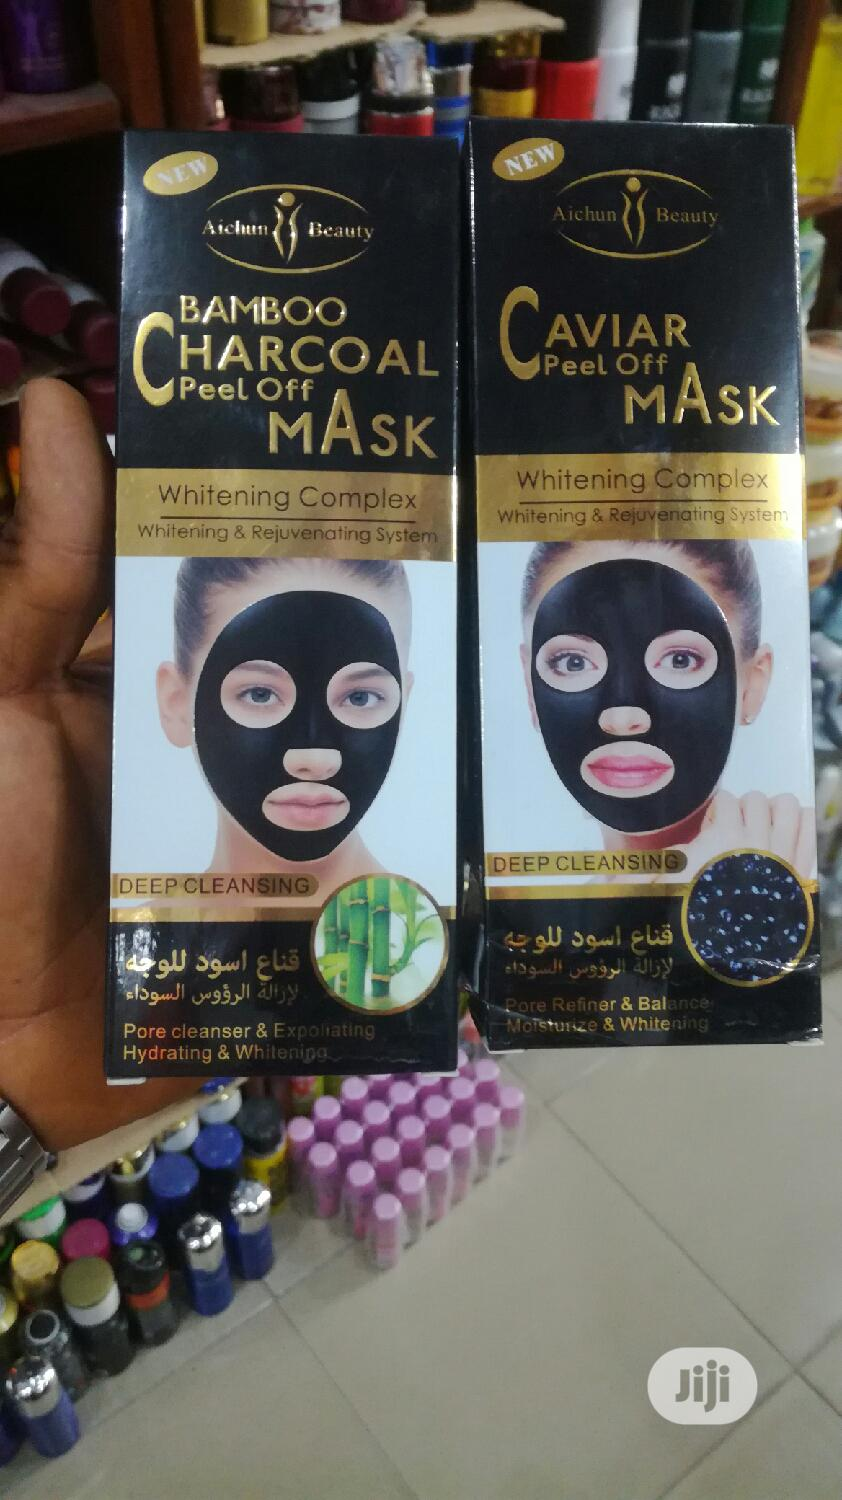 Sea Mud Peel Off Mask